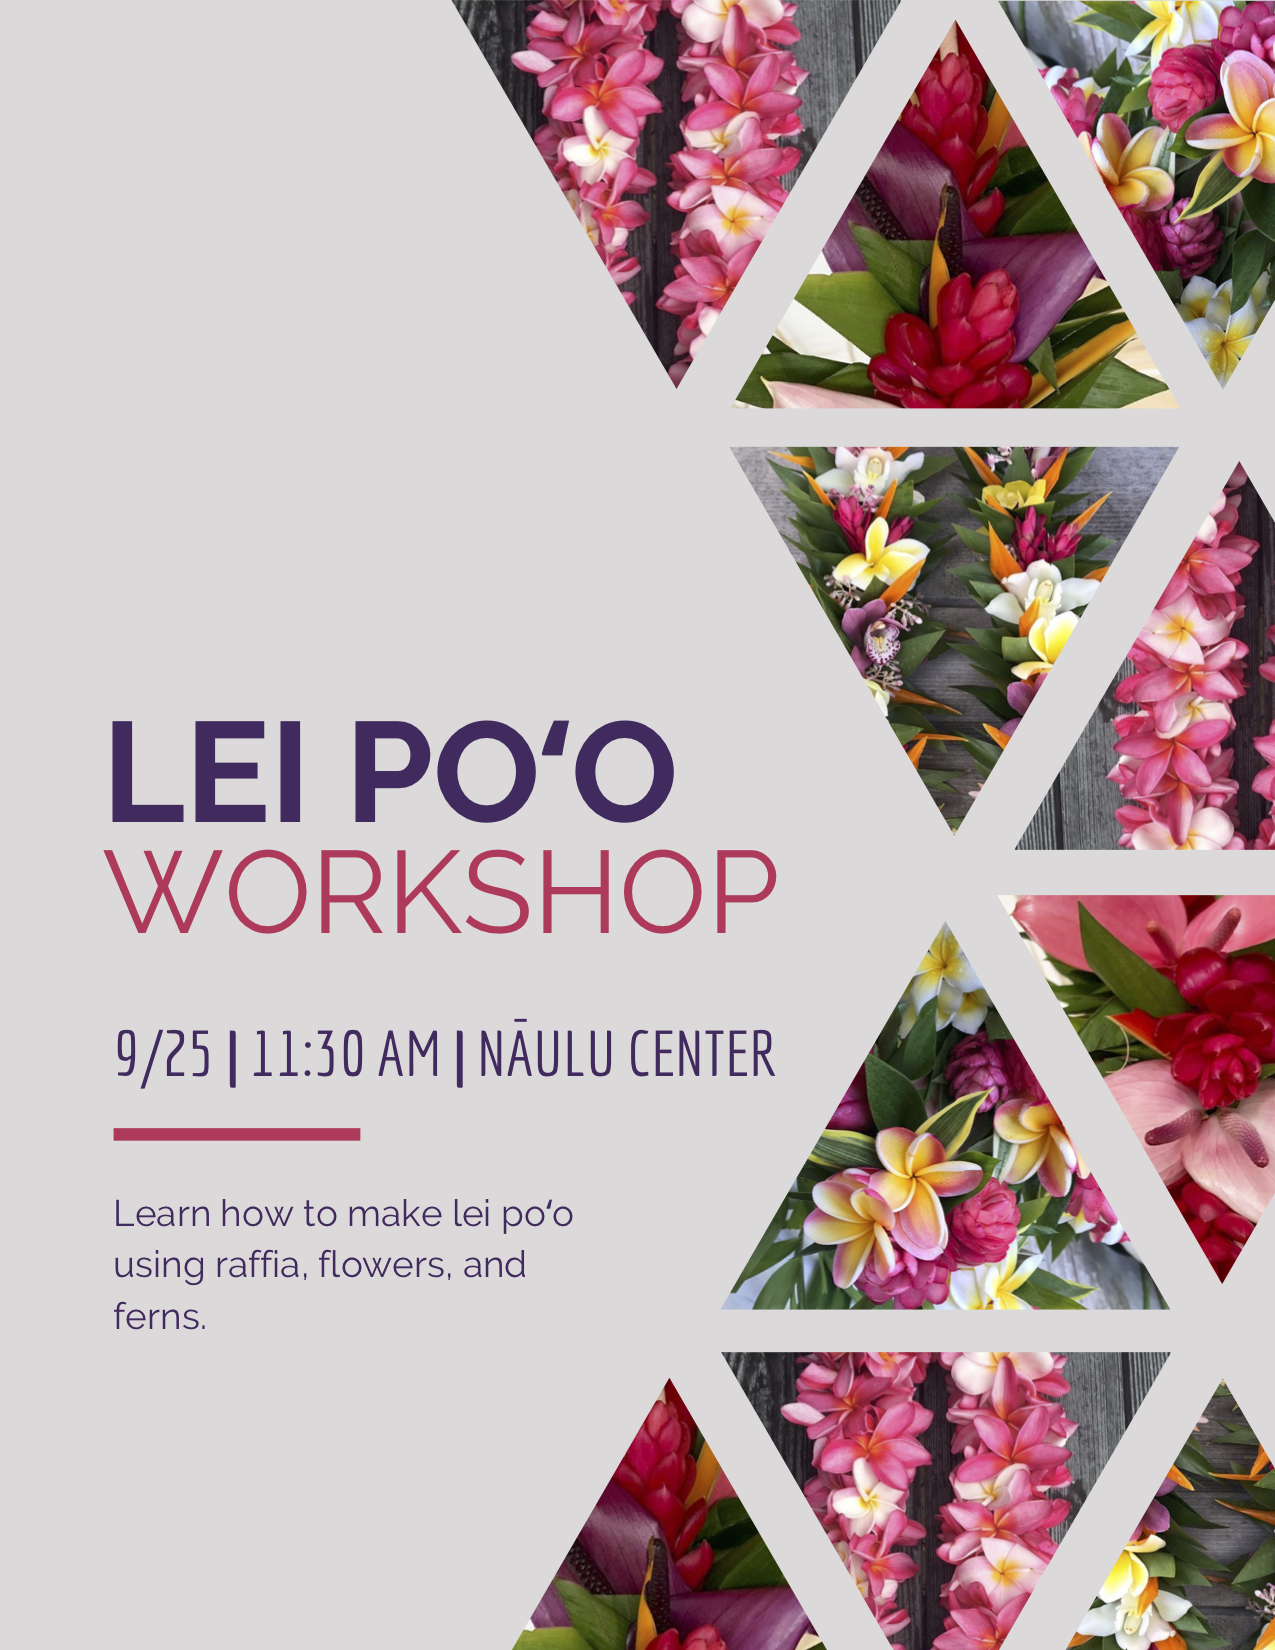 Learn to make a lei poo on September 25 at 11:30 a.m. in the Naulu Center